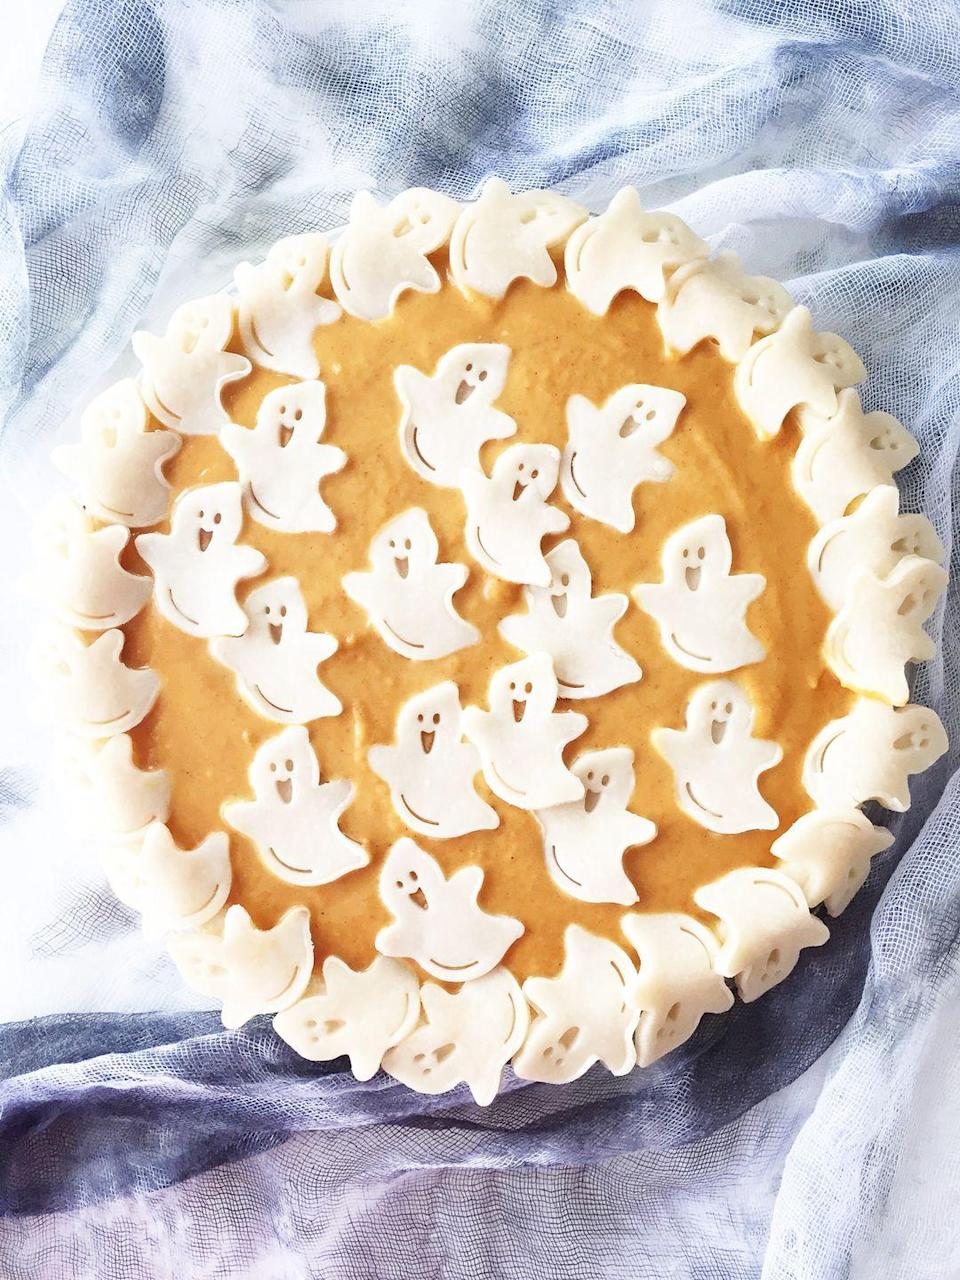 """<p>Believe it or not, decorating with these little cut-out ghosts is actually easier than creating a traditional crust. And they're certainly more adorable!</p><p><strong>Get the recipe at <a href=""""https://aprettylifeinthesuburbs.com/halloween-pumpkin-pie/"""" rel=""""nofollow noopener"""" target=""""_blank"""" data-ylk=""""slk:A Pretty Life in the Suburbs"""" class=""""link rapid-noclick-resp"""">A Pretty Life in the Suburbs</a>.</strong></p><p><strong><a class=""""link rapid-noclick-resp"""" href=""""https://go.redirectingat.com?id=74968X1596630&url=https%3A%2F%2Fwww.walmart.com%2Fbrowse%2Fhome%2Fbakeware%2Fthe-pioneer-woman%2F4044_623679_8455465&sref=https%3A%2F%2Fwww.thepioneerwoman.com%2Ffood-cooking%2Fmeals-menus%2Fg32110899%2Fbest-halloween-desserts%2F"""" rel=""""nofollow noopener"""" target=""""_blank"""" data-ylk=""""slk:SHOP BAKEWARE"""">SHOP BAKEWARE</a><br></strong></p>"""